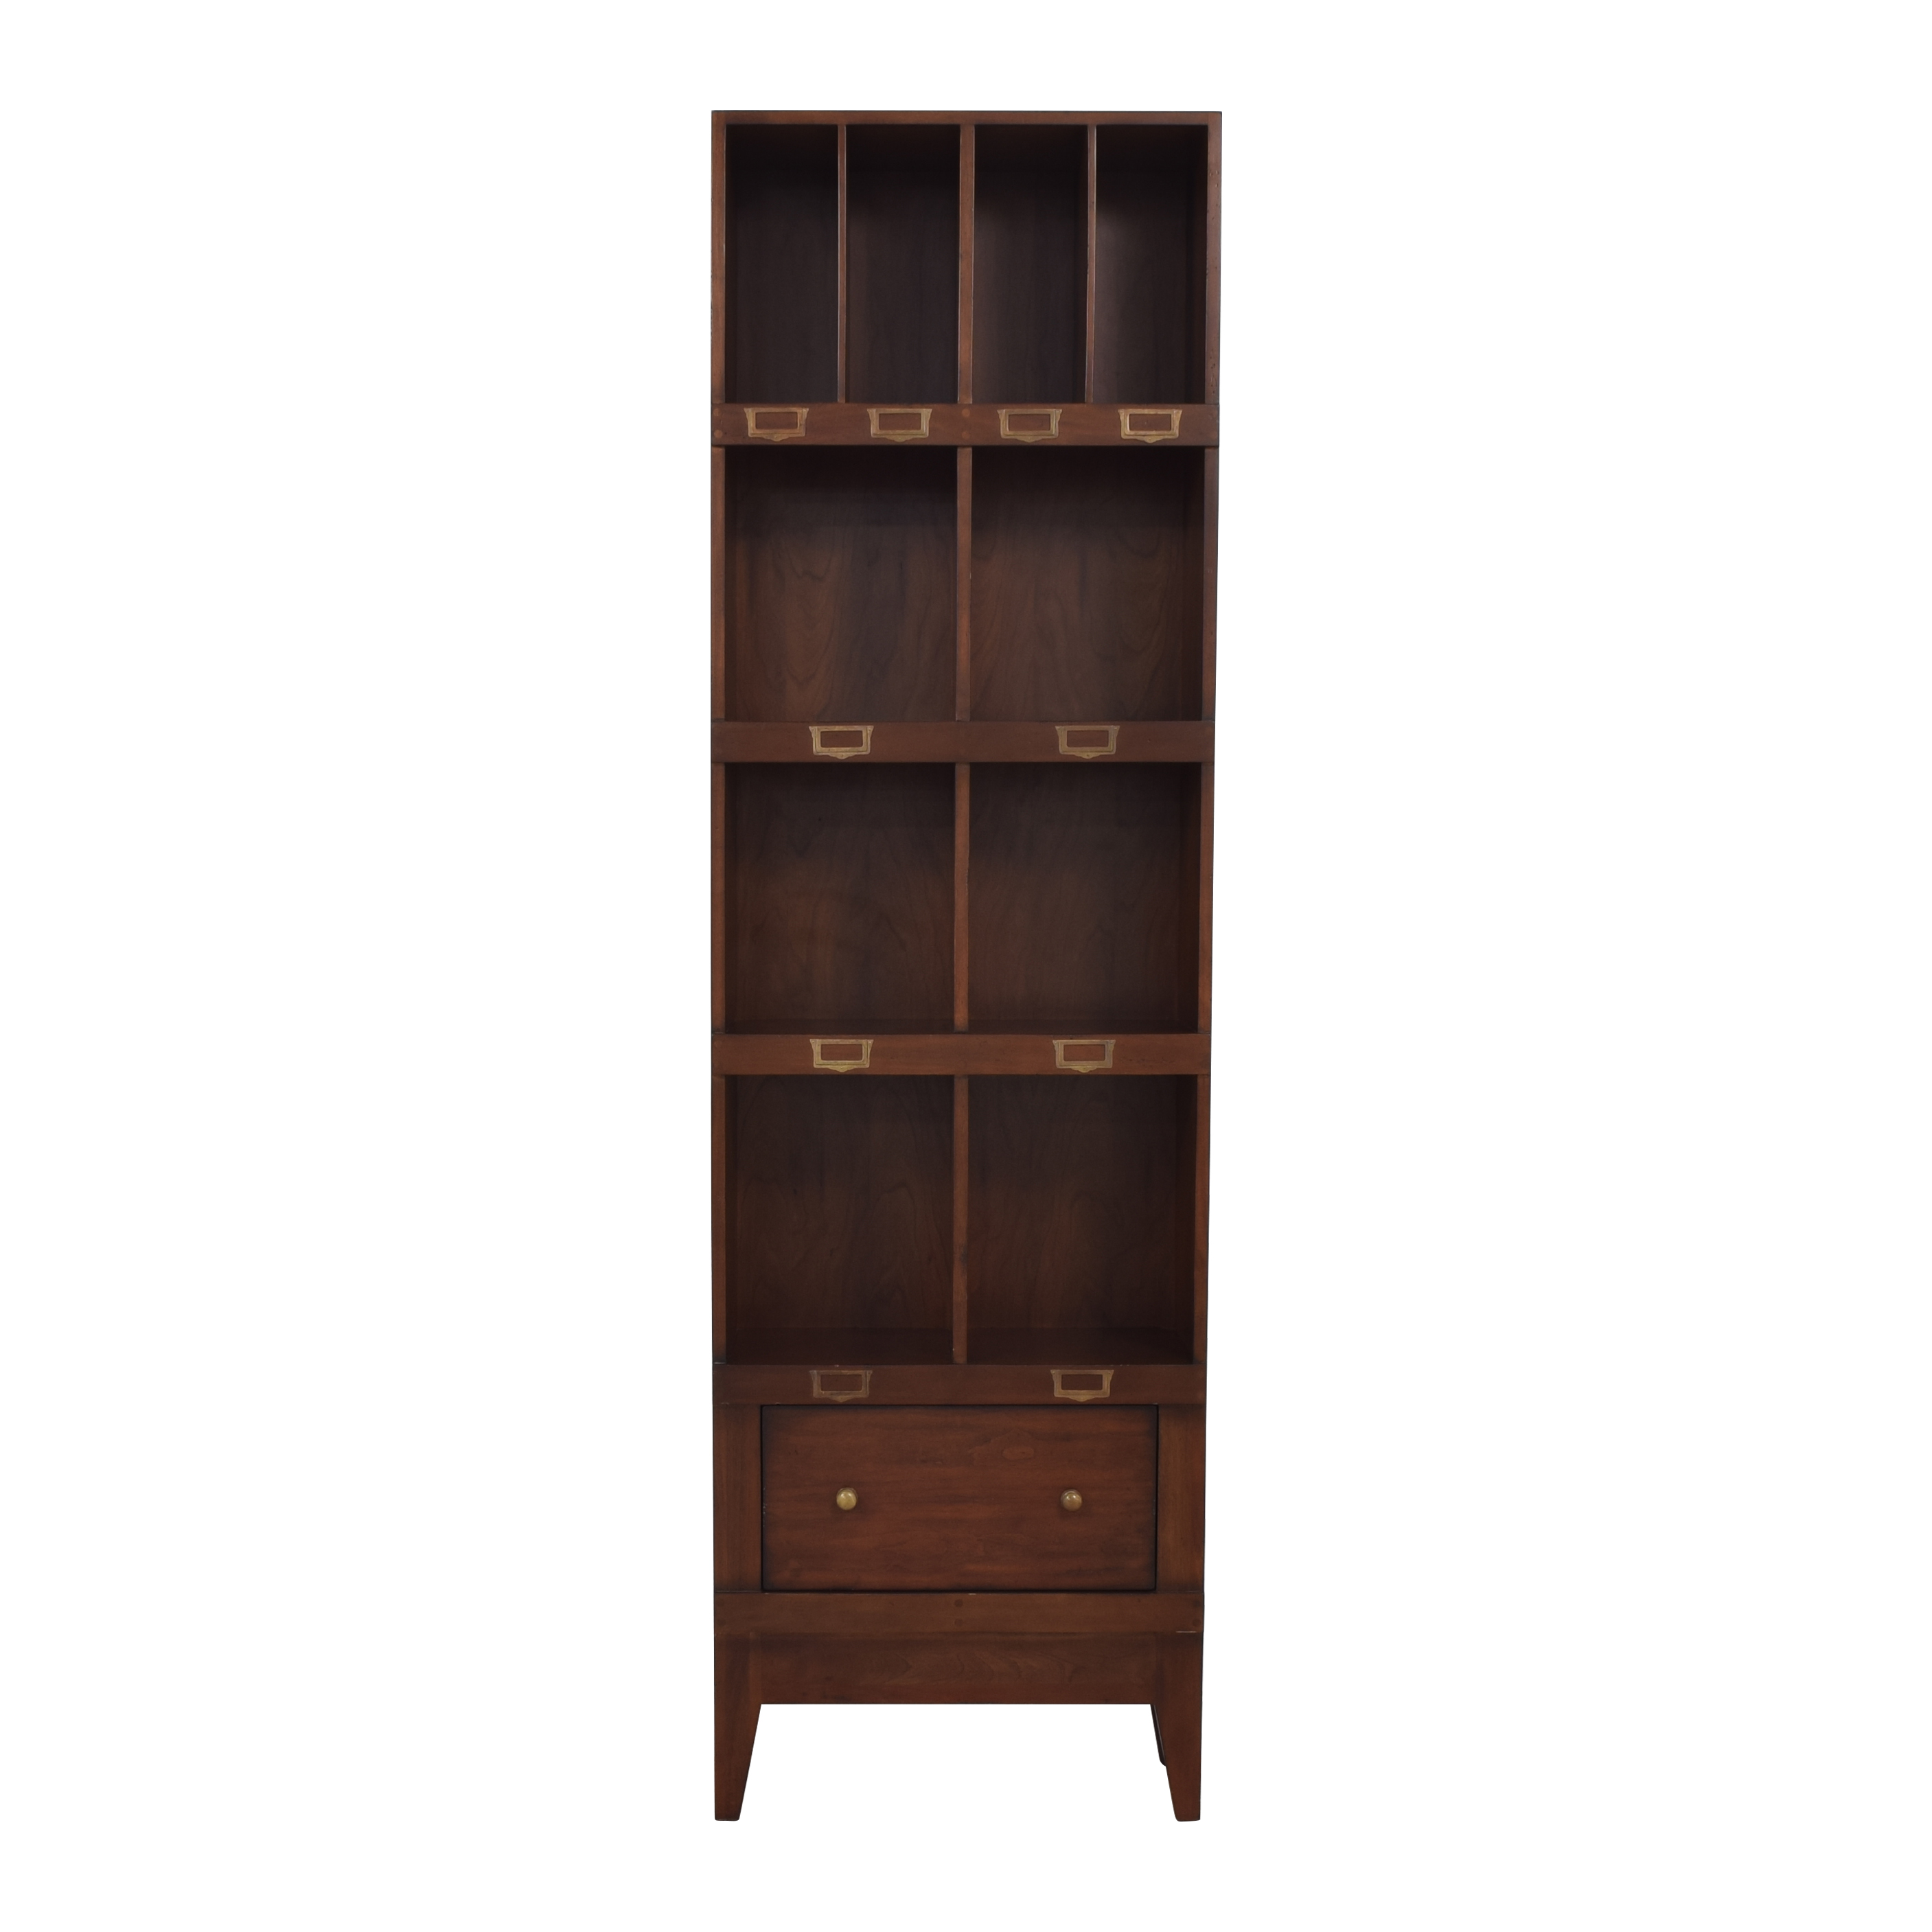 French Heritage French Heritage Modified Bookcase for sale